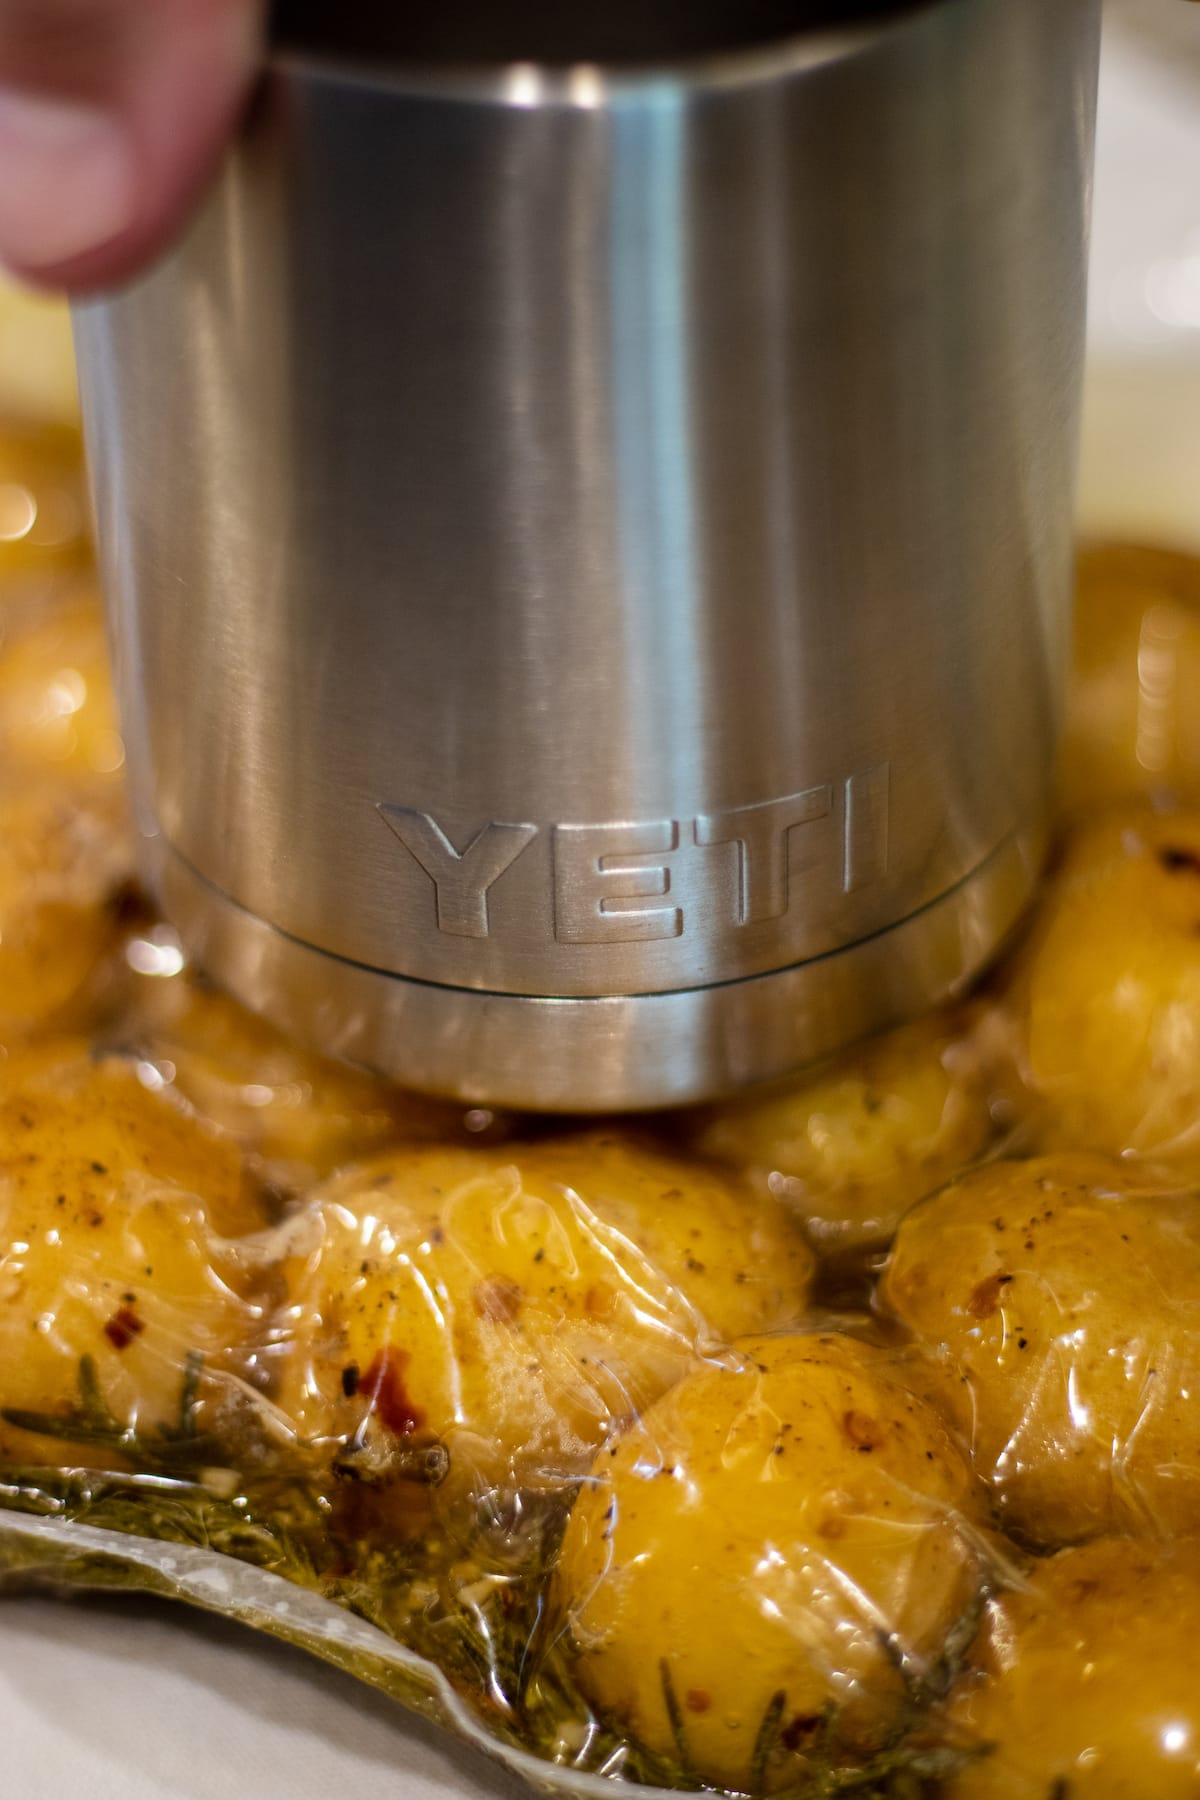 Yukon gold potatoes in a bag being smashed by a yeti tumbler.